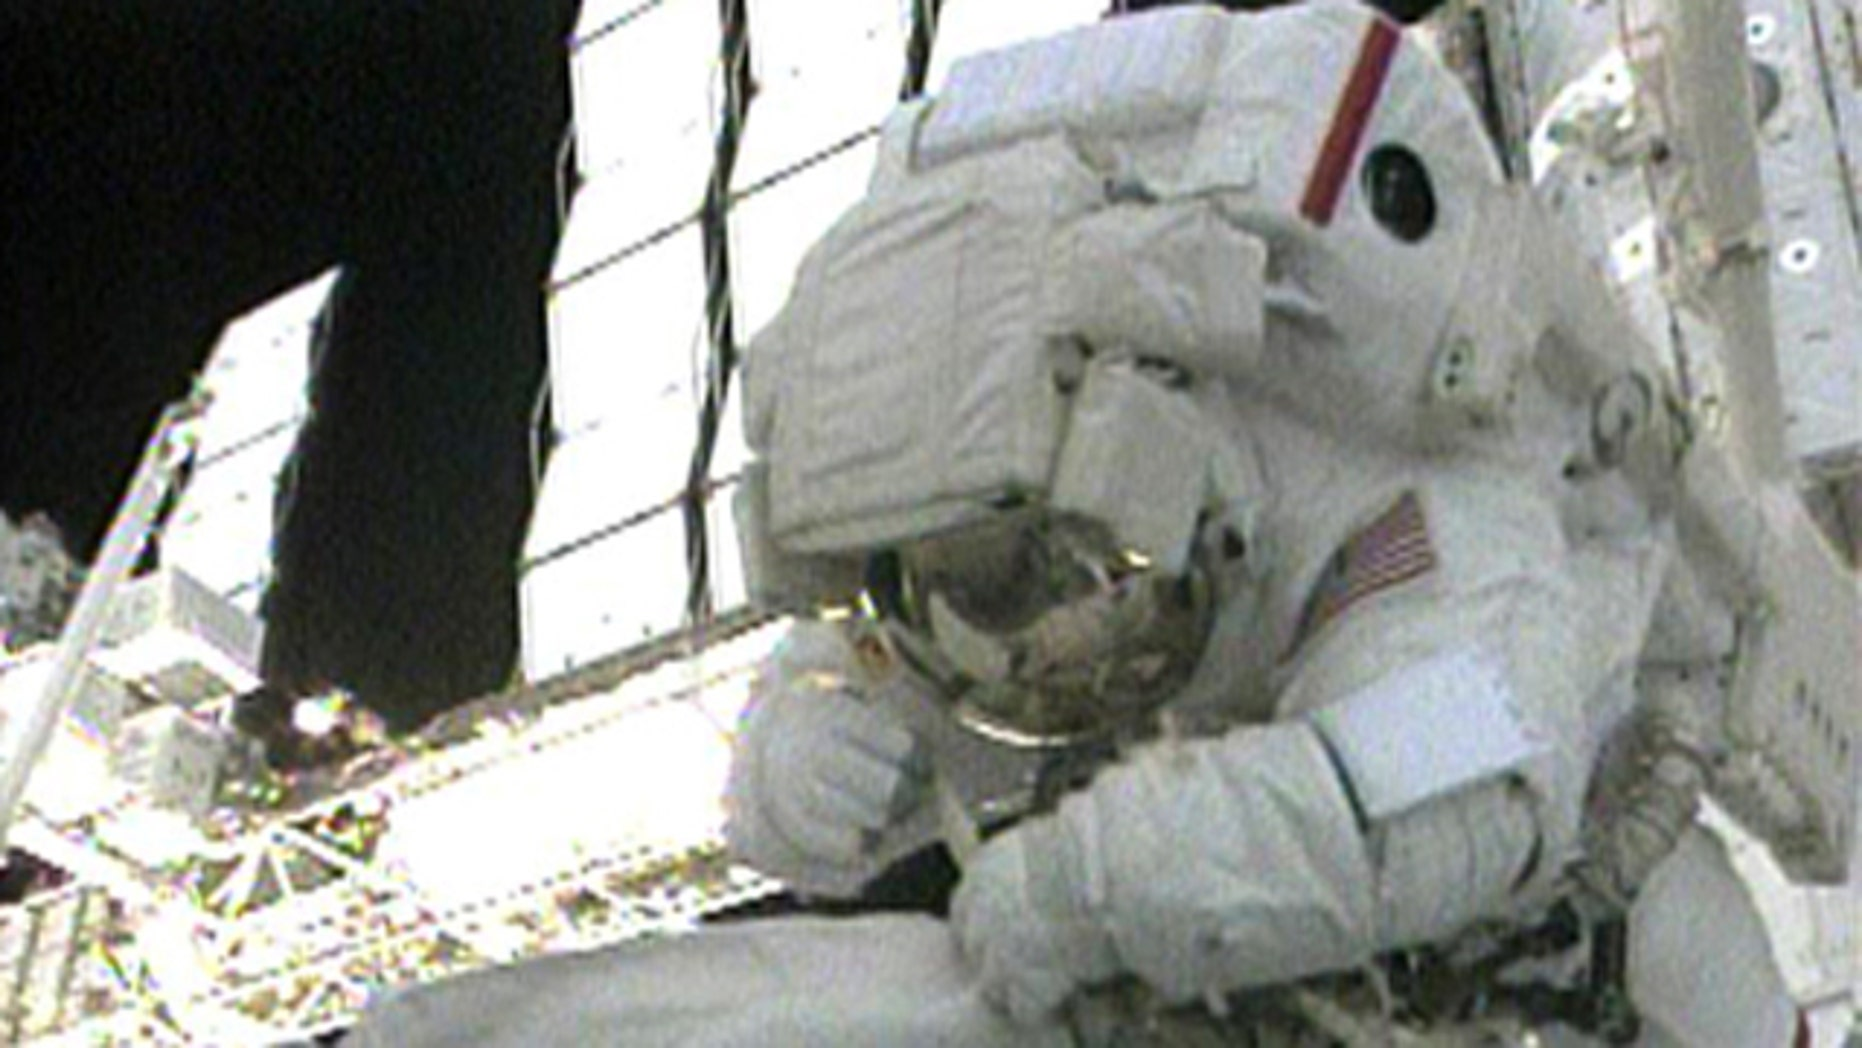 STS-130 Mission Specialist Bob Behnken works outside the International Space Station during the first spacewalk of the STS-130 mission on Feb. 10, 2010.